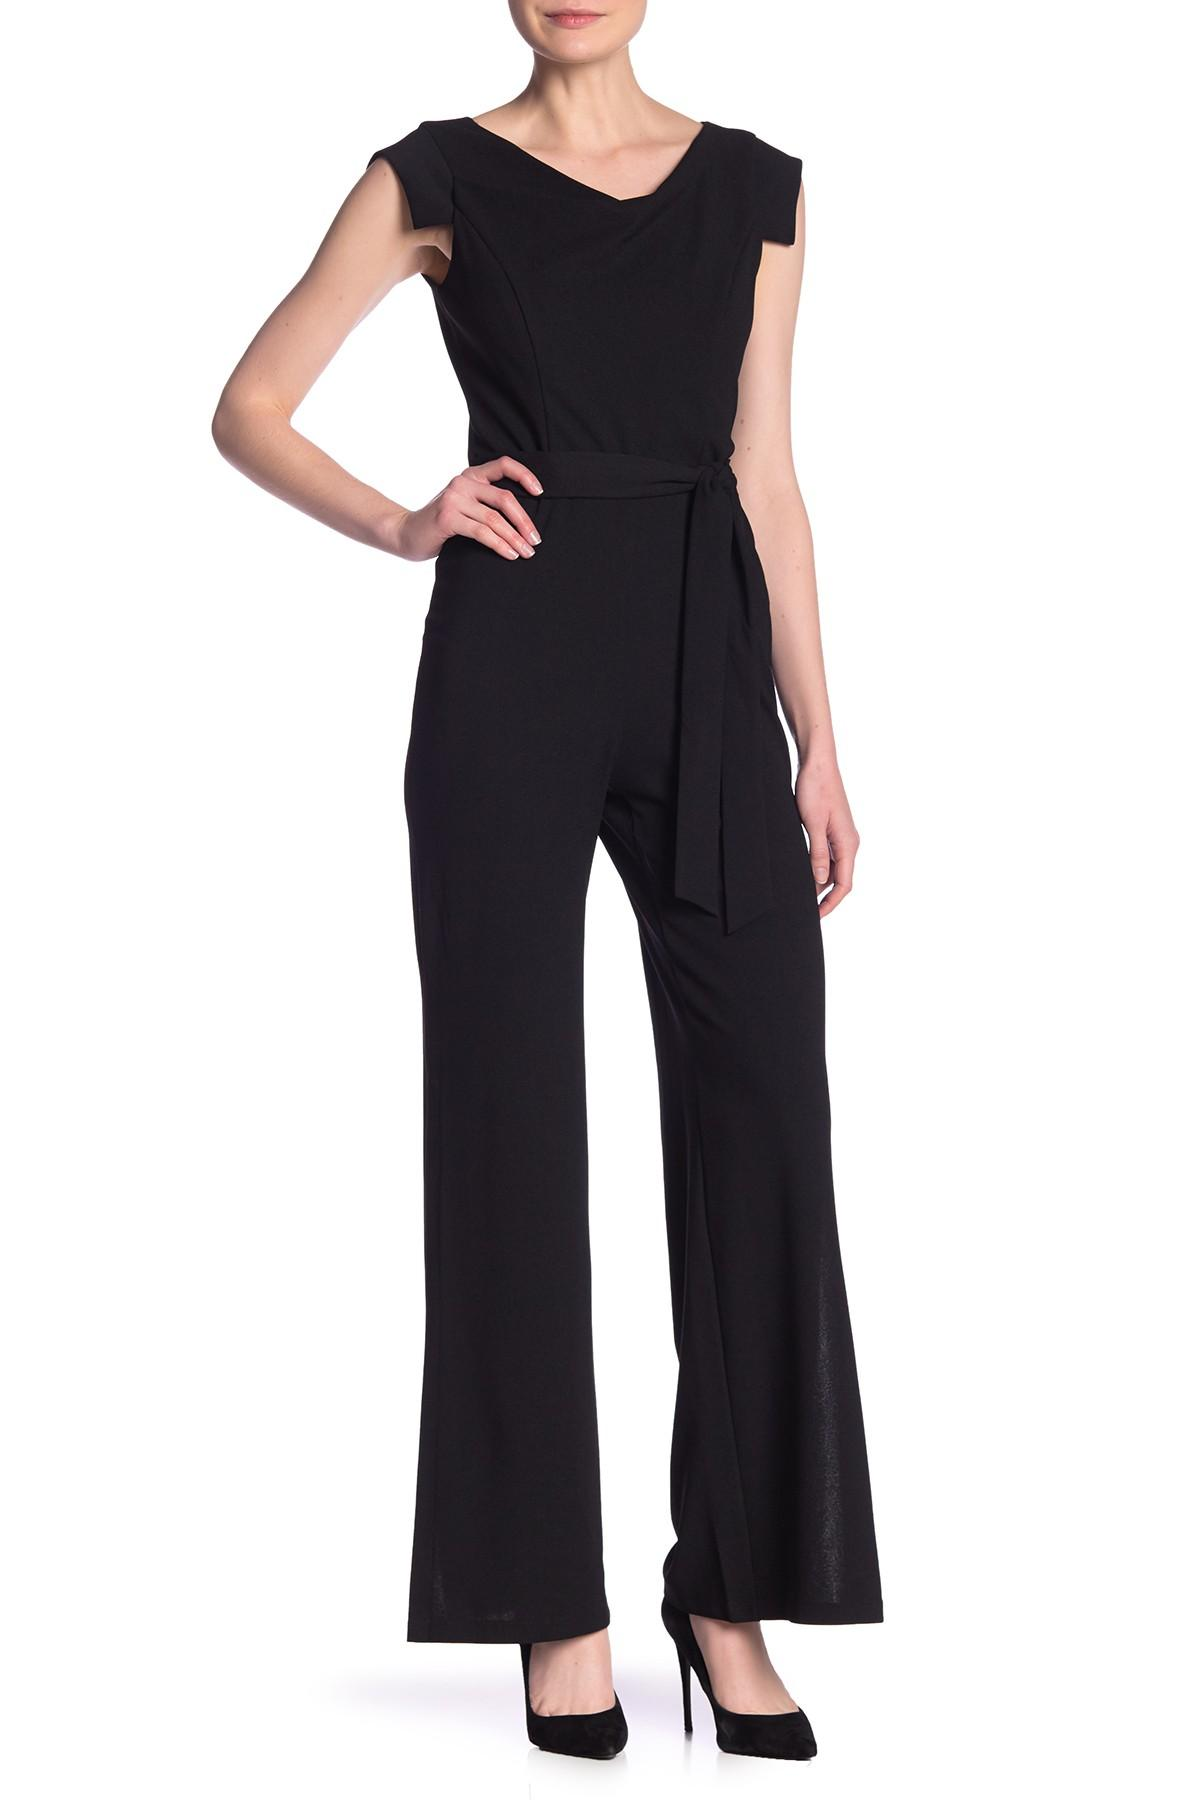 1bb085b658f2 Lyst - Bebe Cowl Neck Solid Jumpsuit in Black